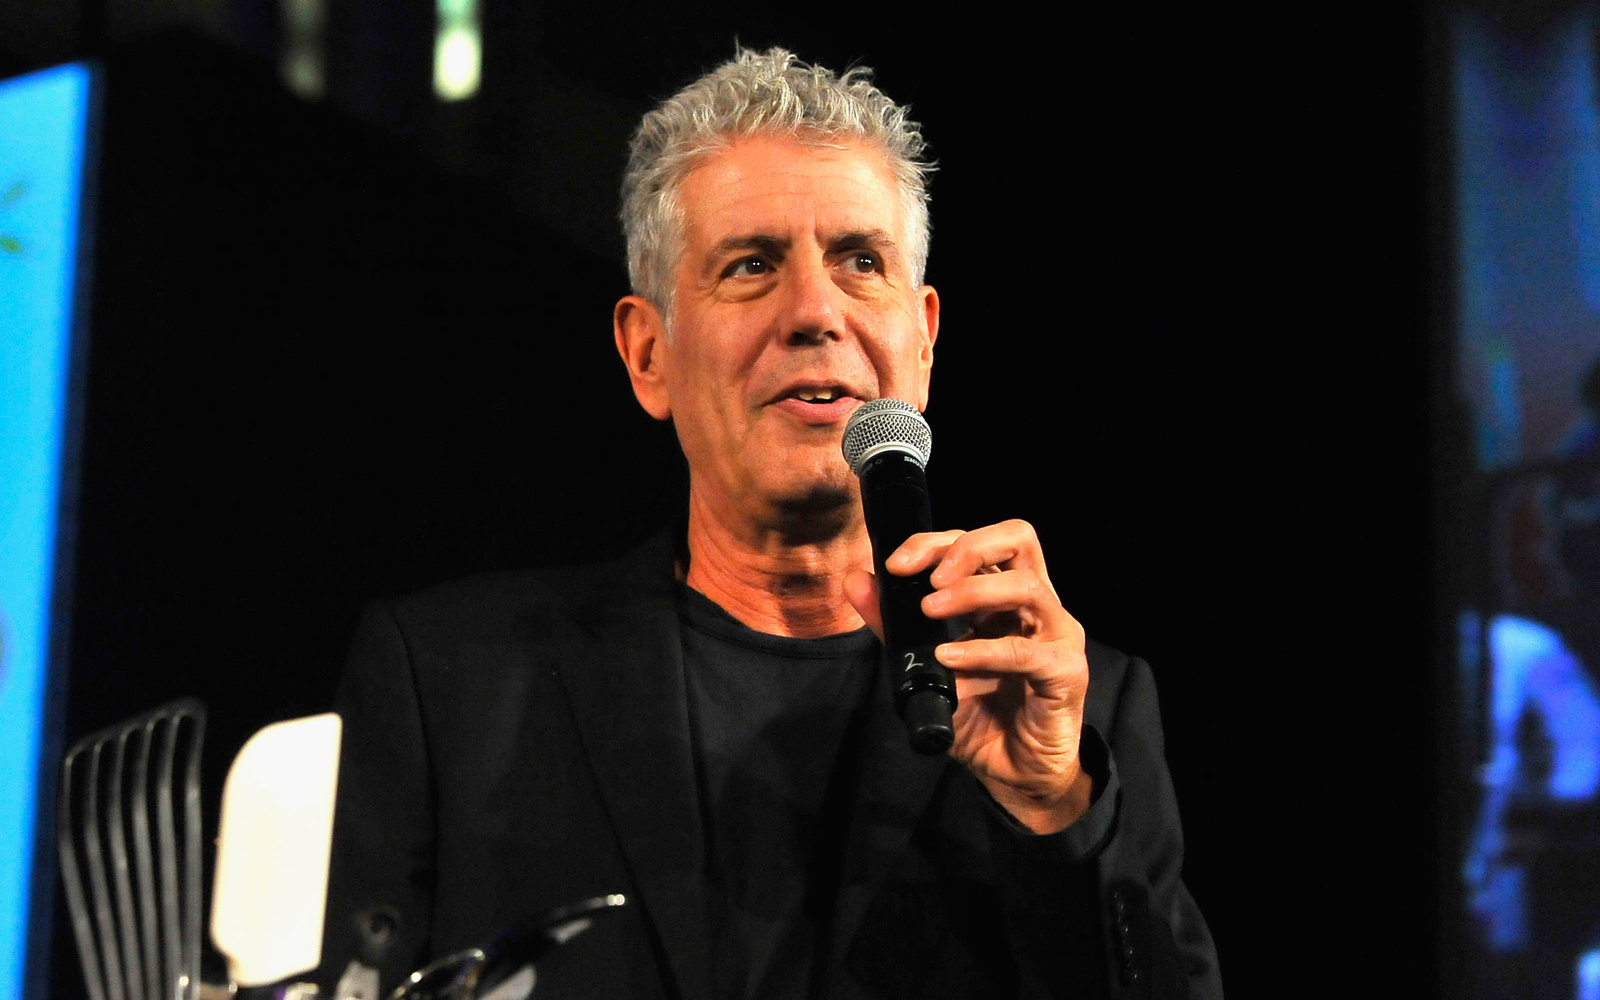 Anthony Bourdain Is Going on Tour